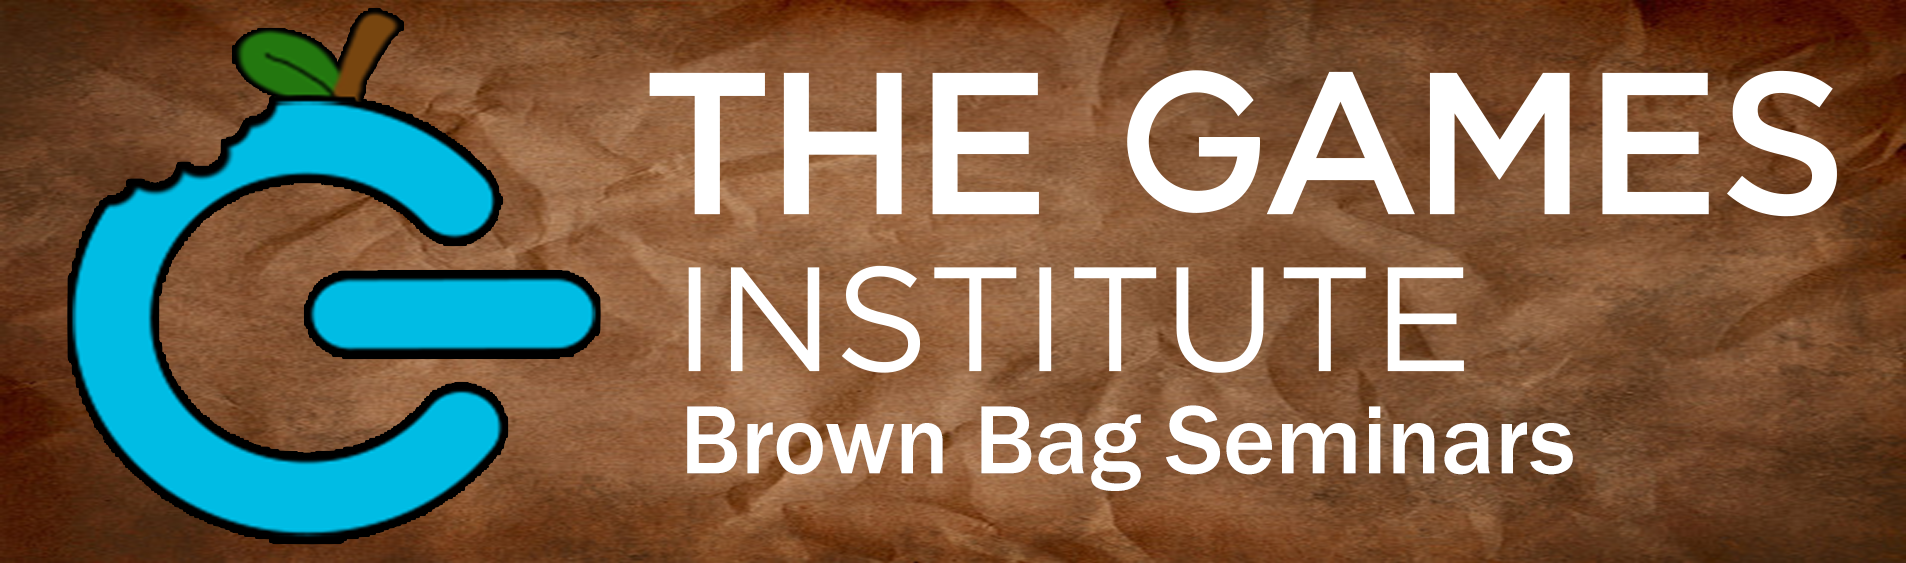 The Games Institute Logo banner